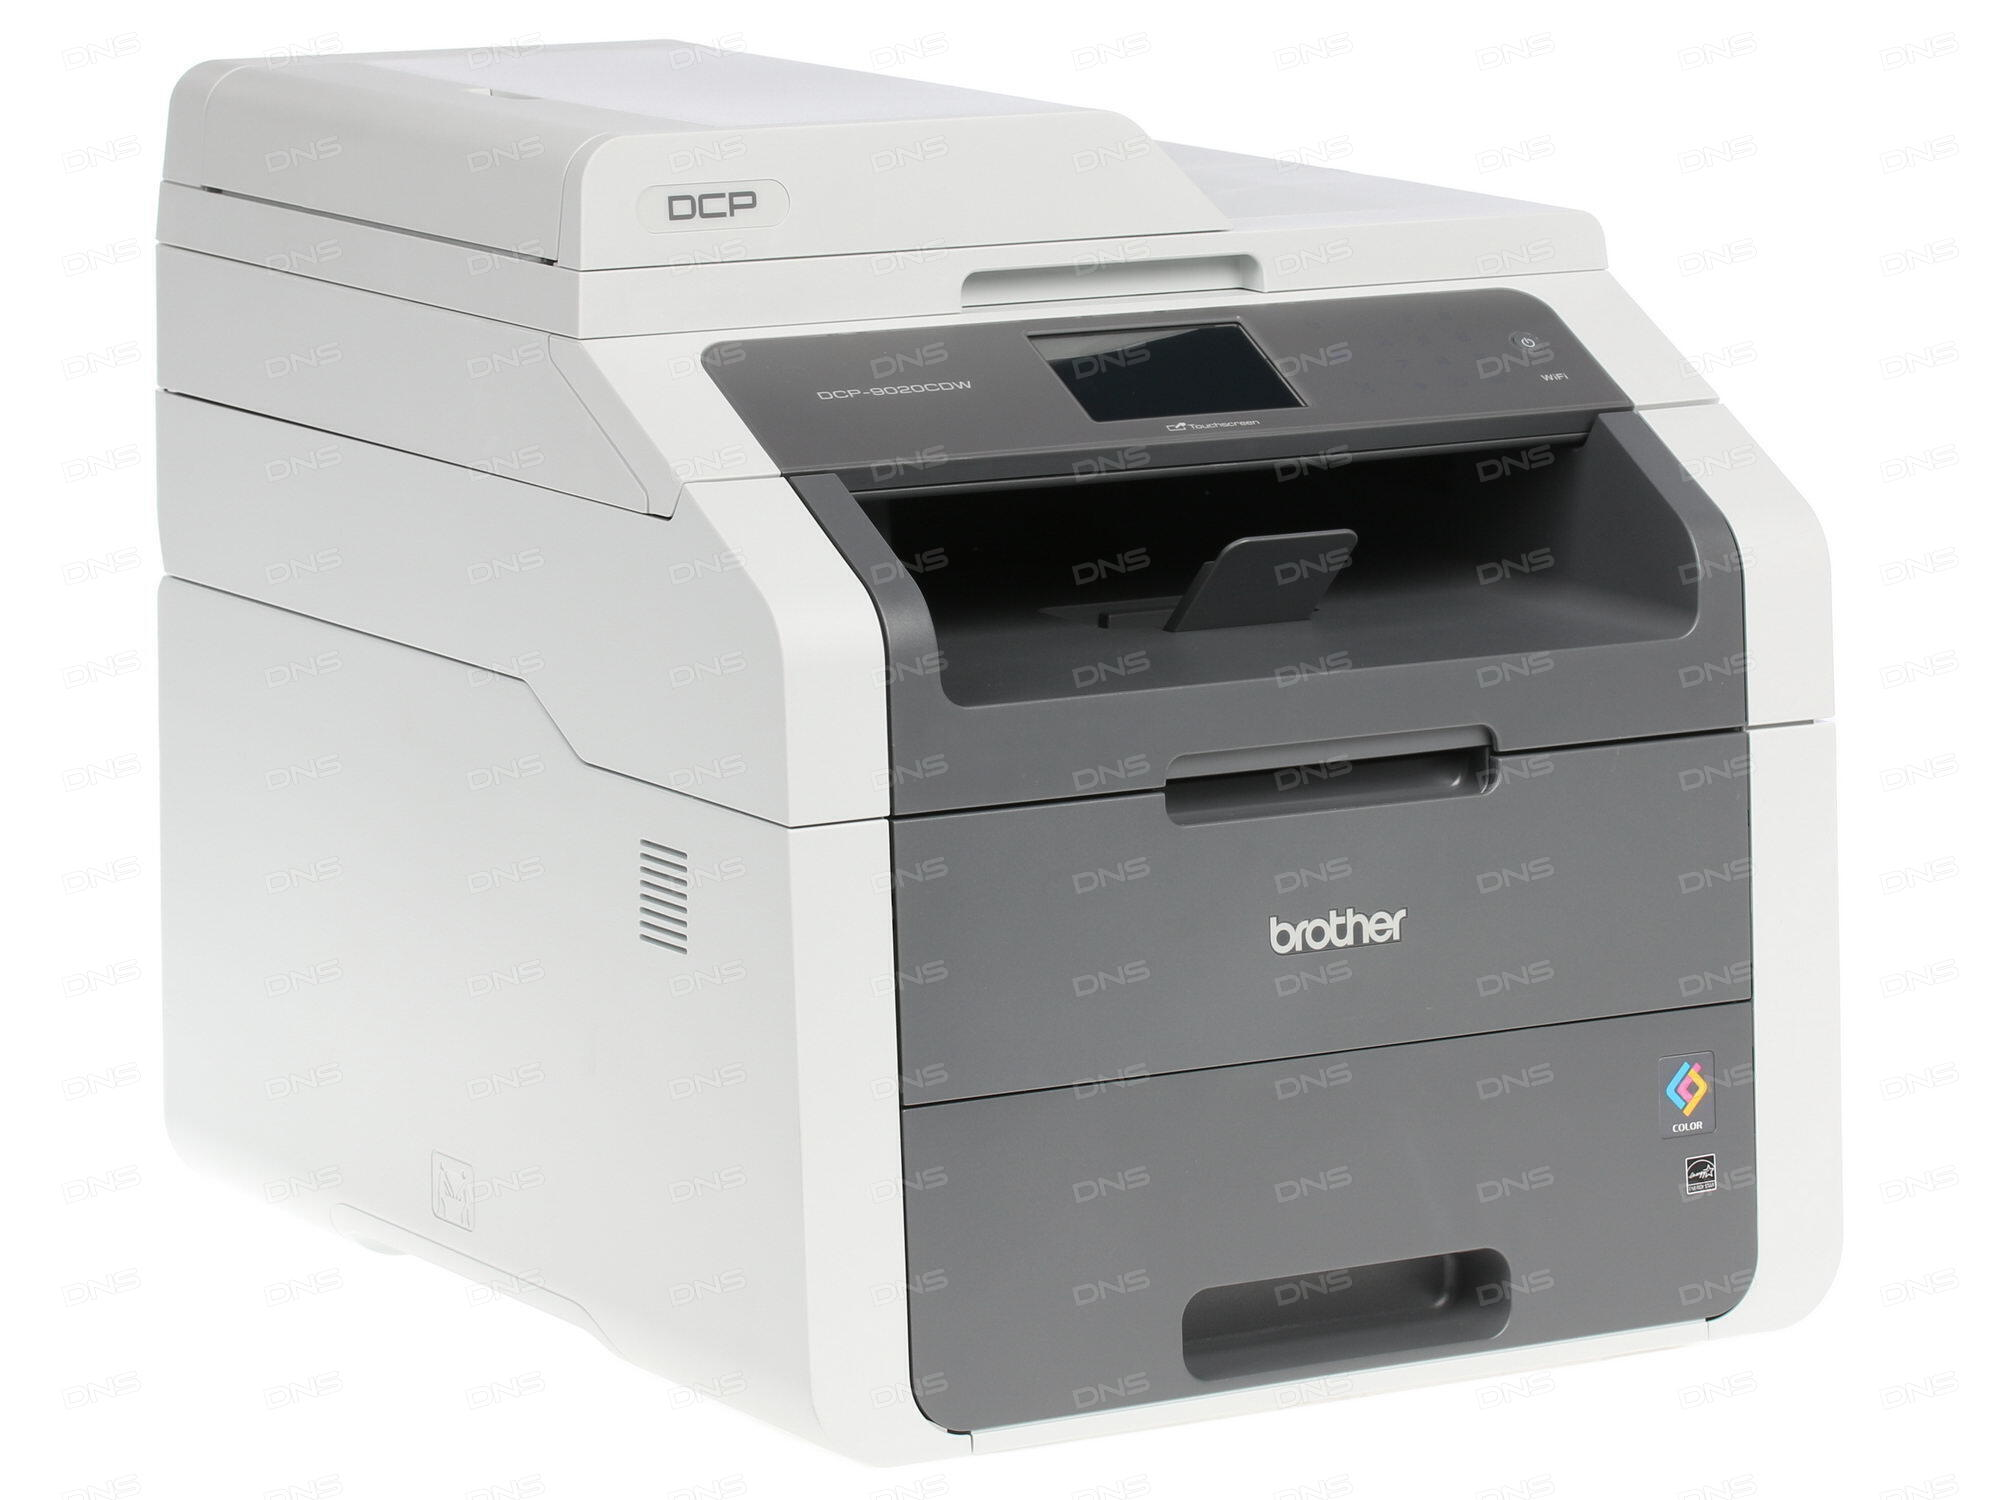 МФУ Brother DCP-9020CDW цветное A4 18ppm автоподатчик дуплекс 600x600dpi Ethernet WiFi USB